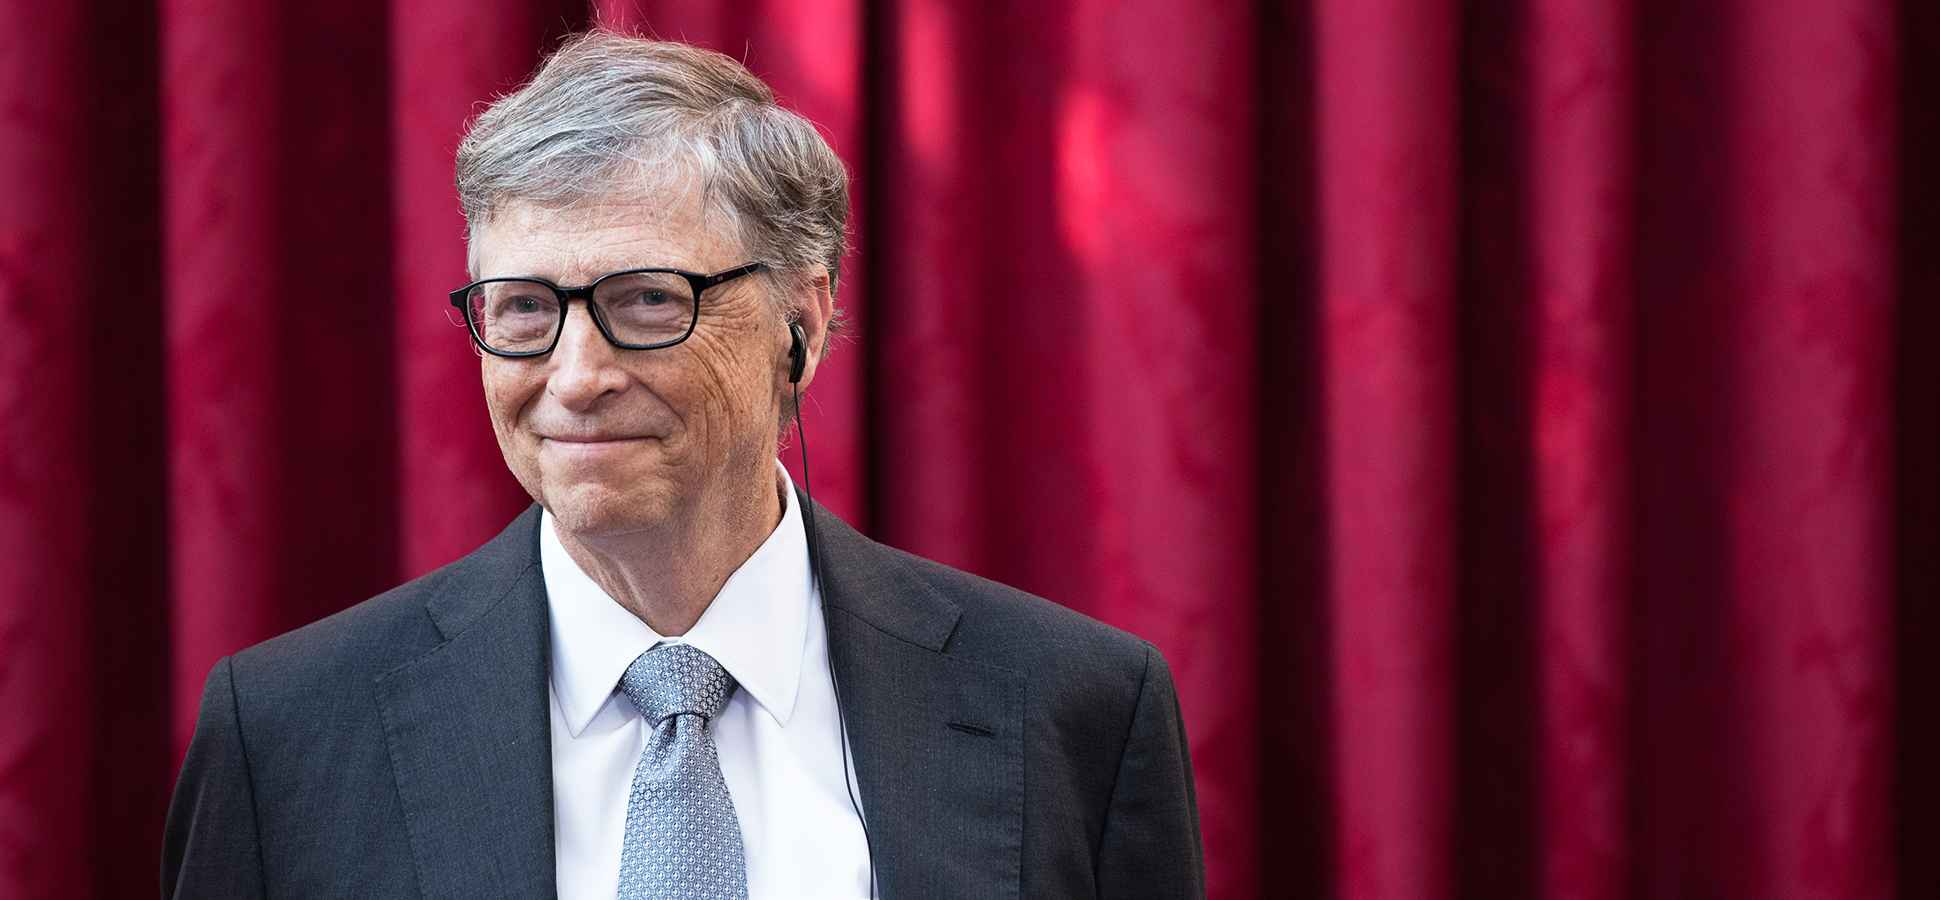 This Novel Is So Good Bill Gates Gave It to 50 of His Friends